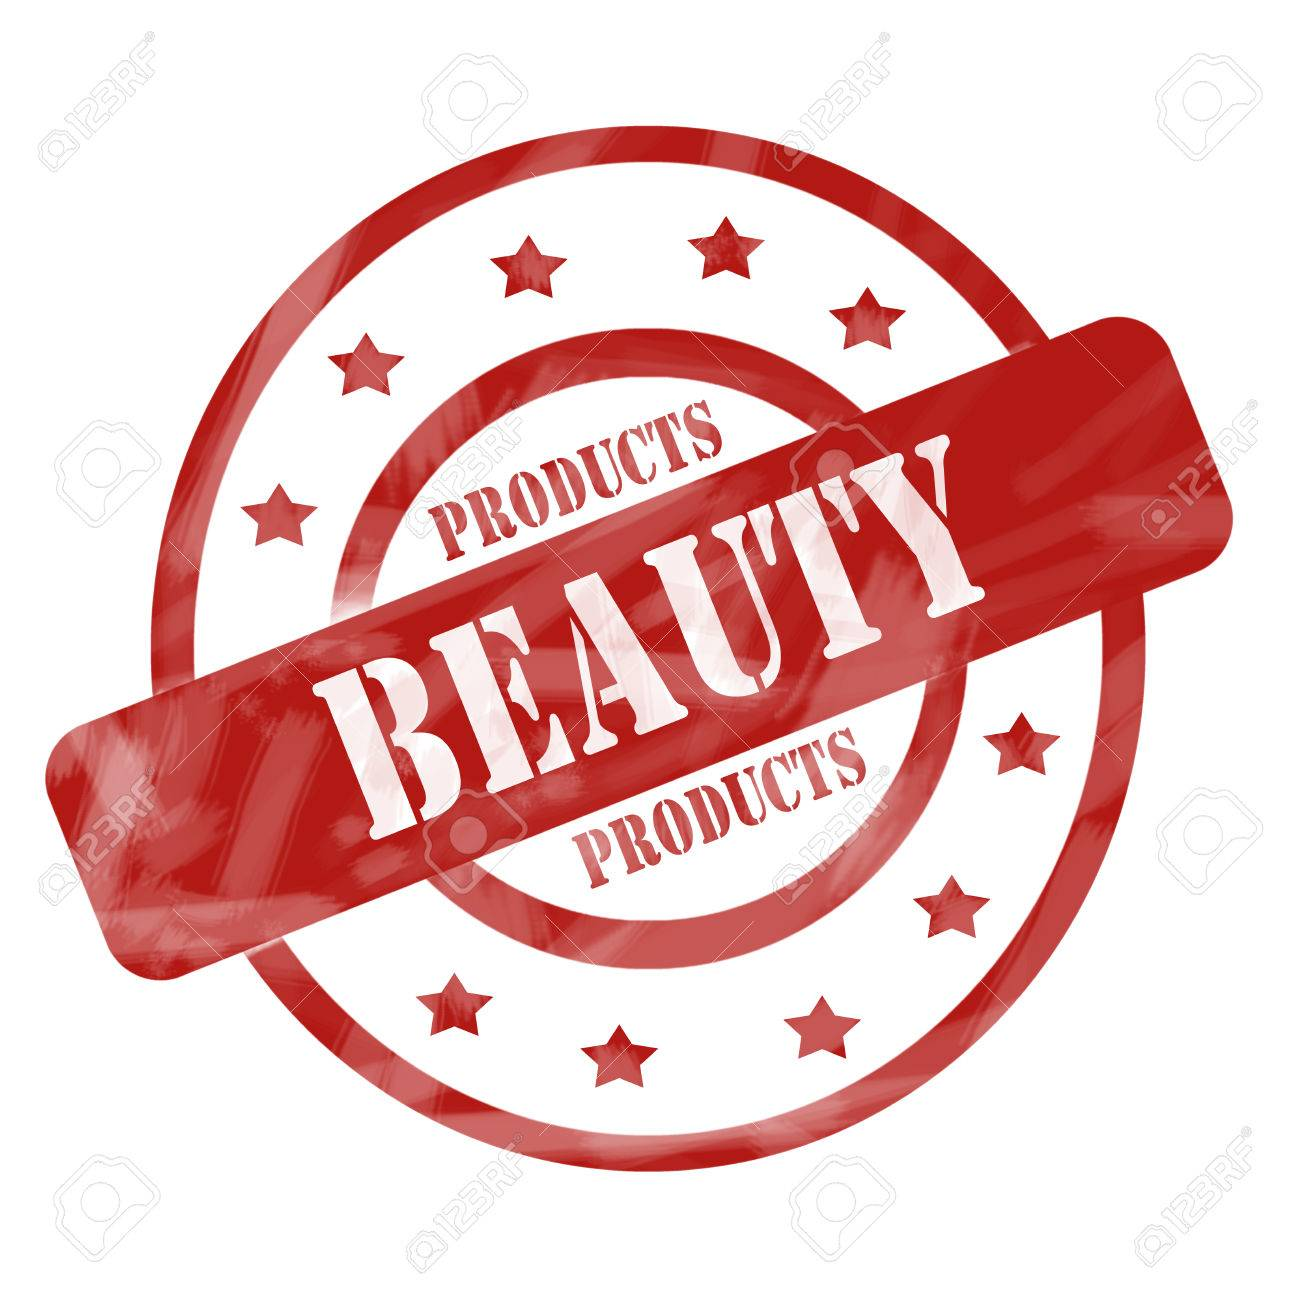 Image result for images that say the words beauty products